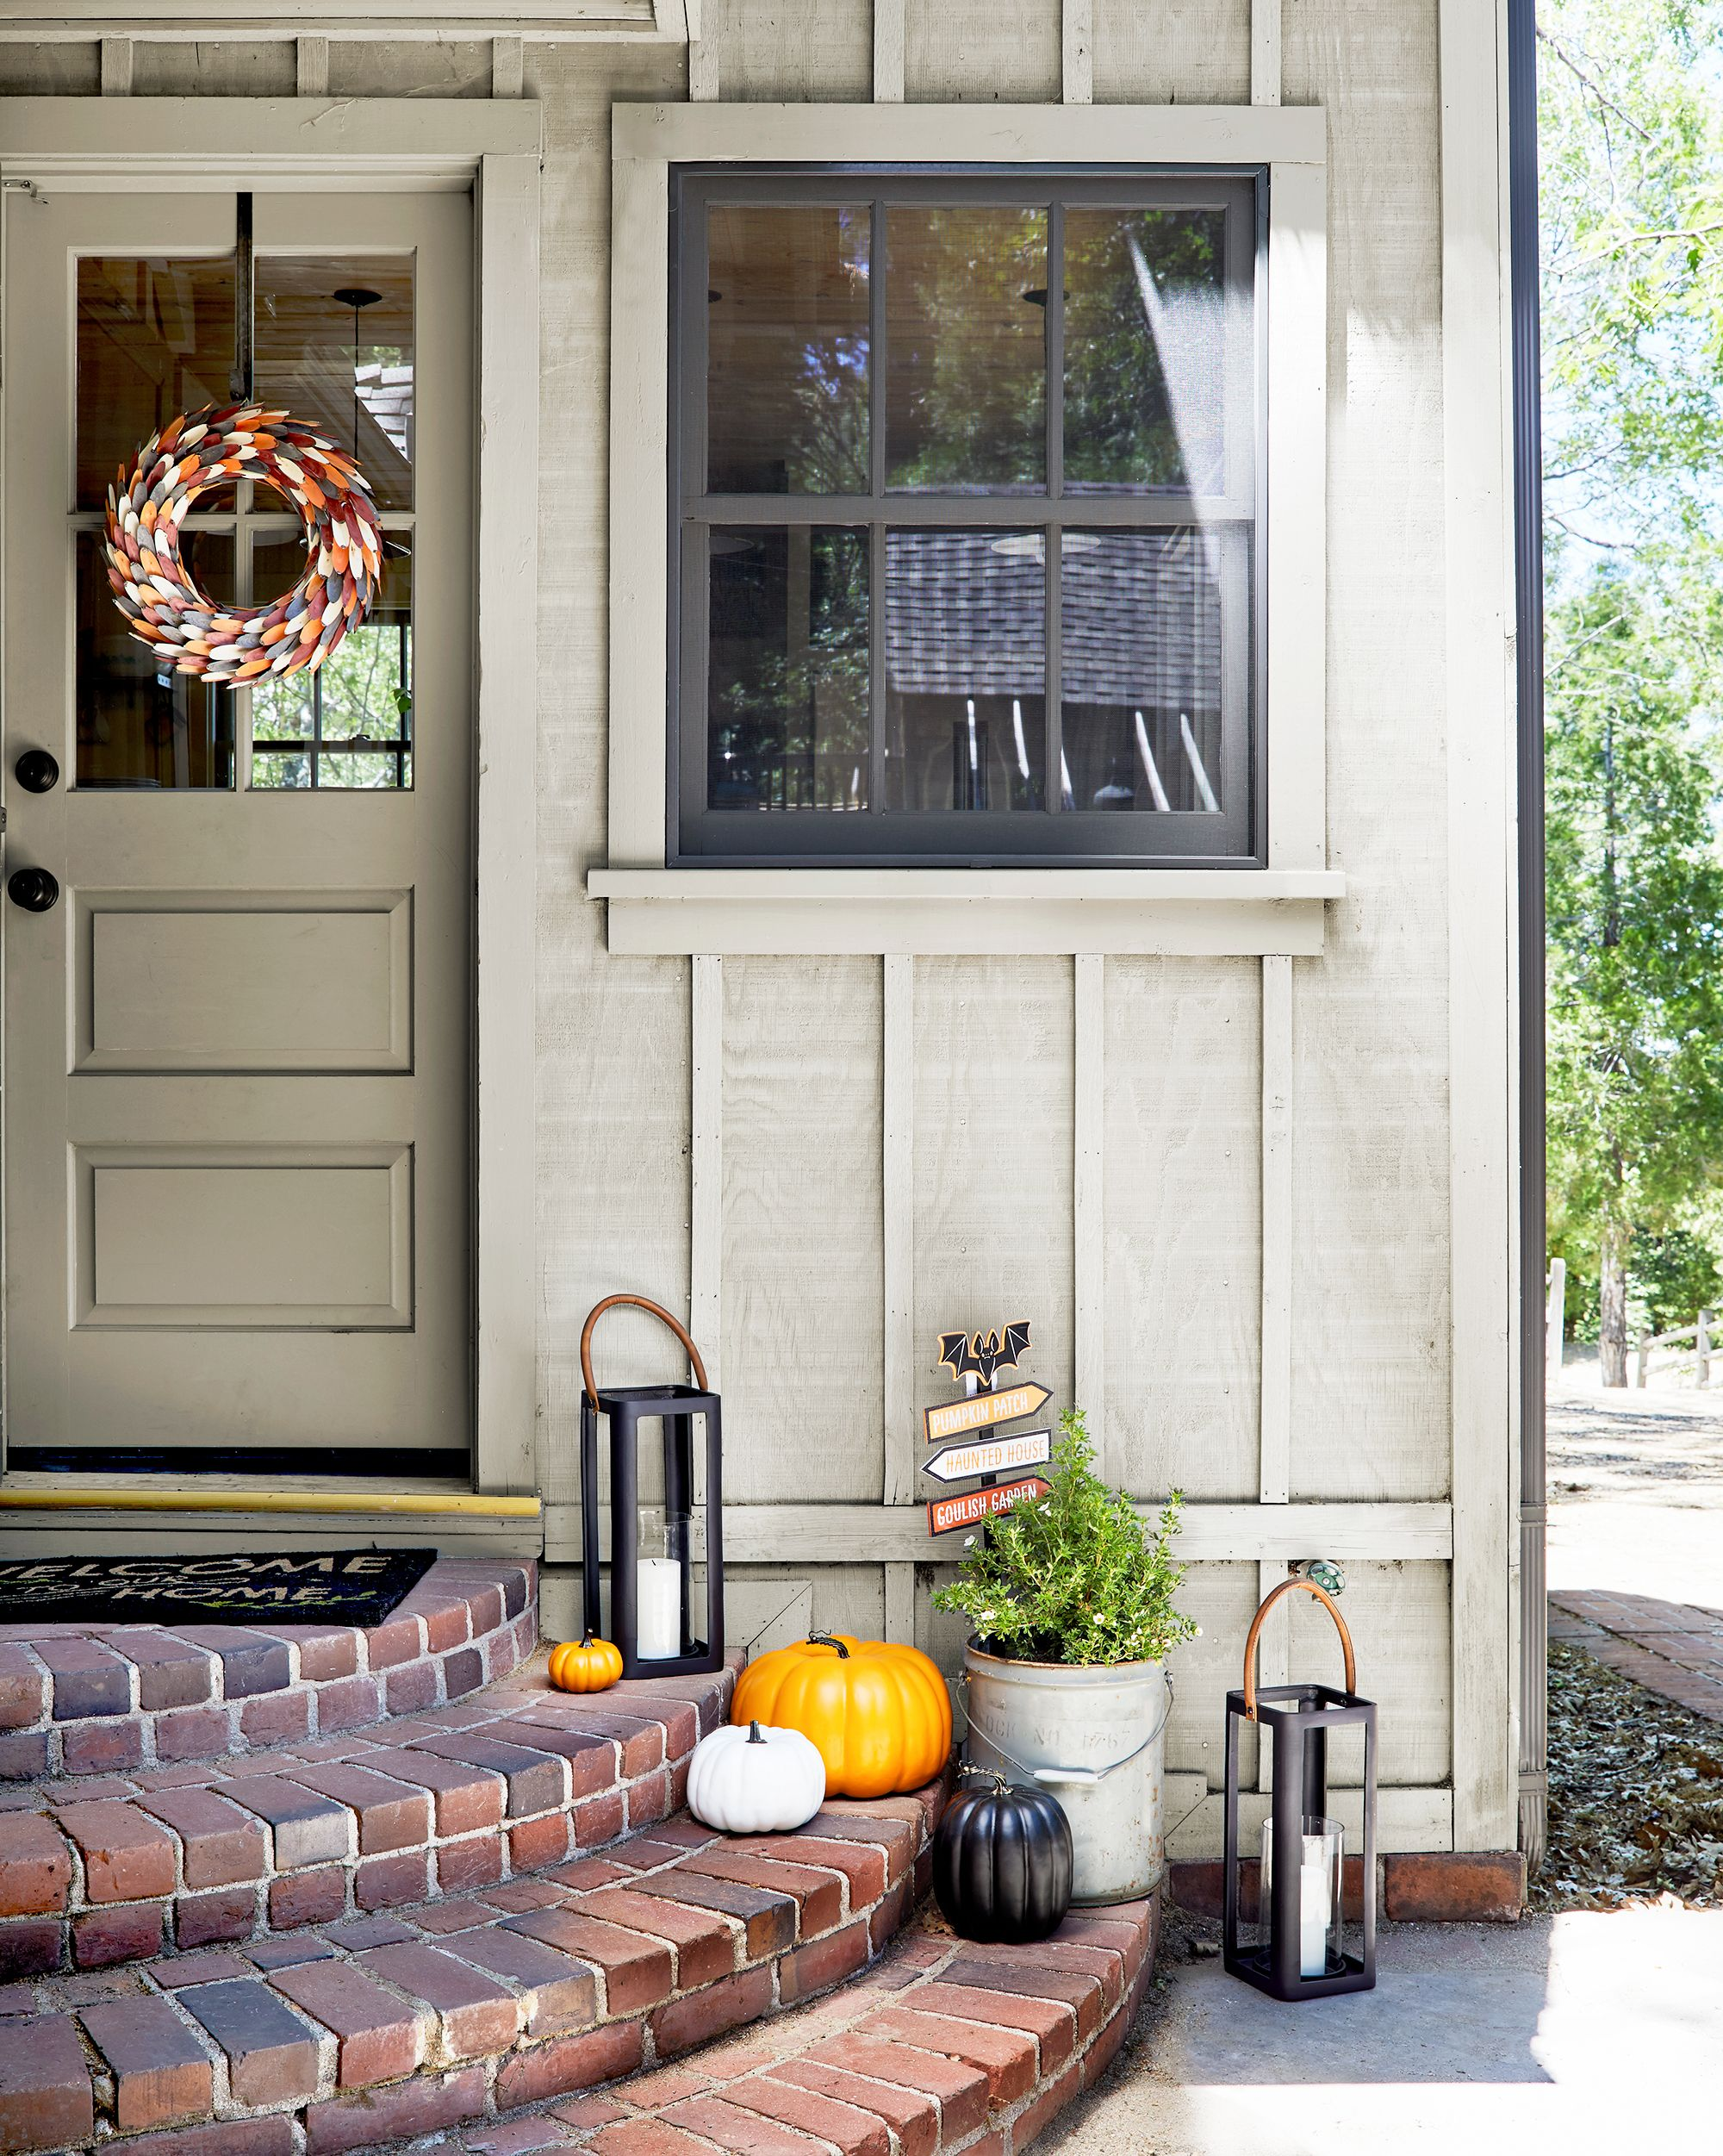 41 DIY Halloween Decorations Cool Homemade Halloween Decor